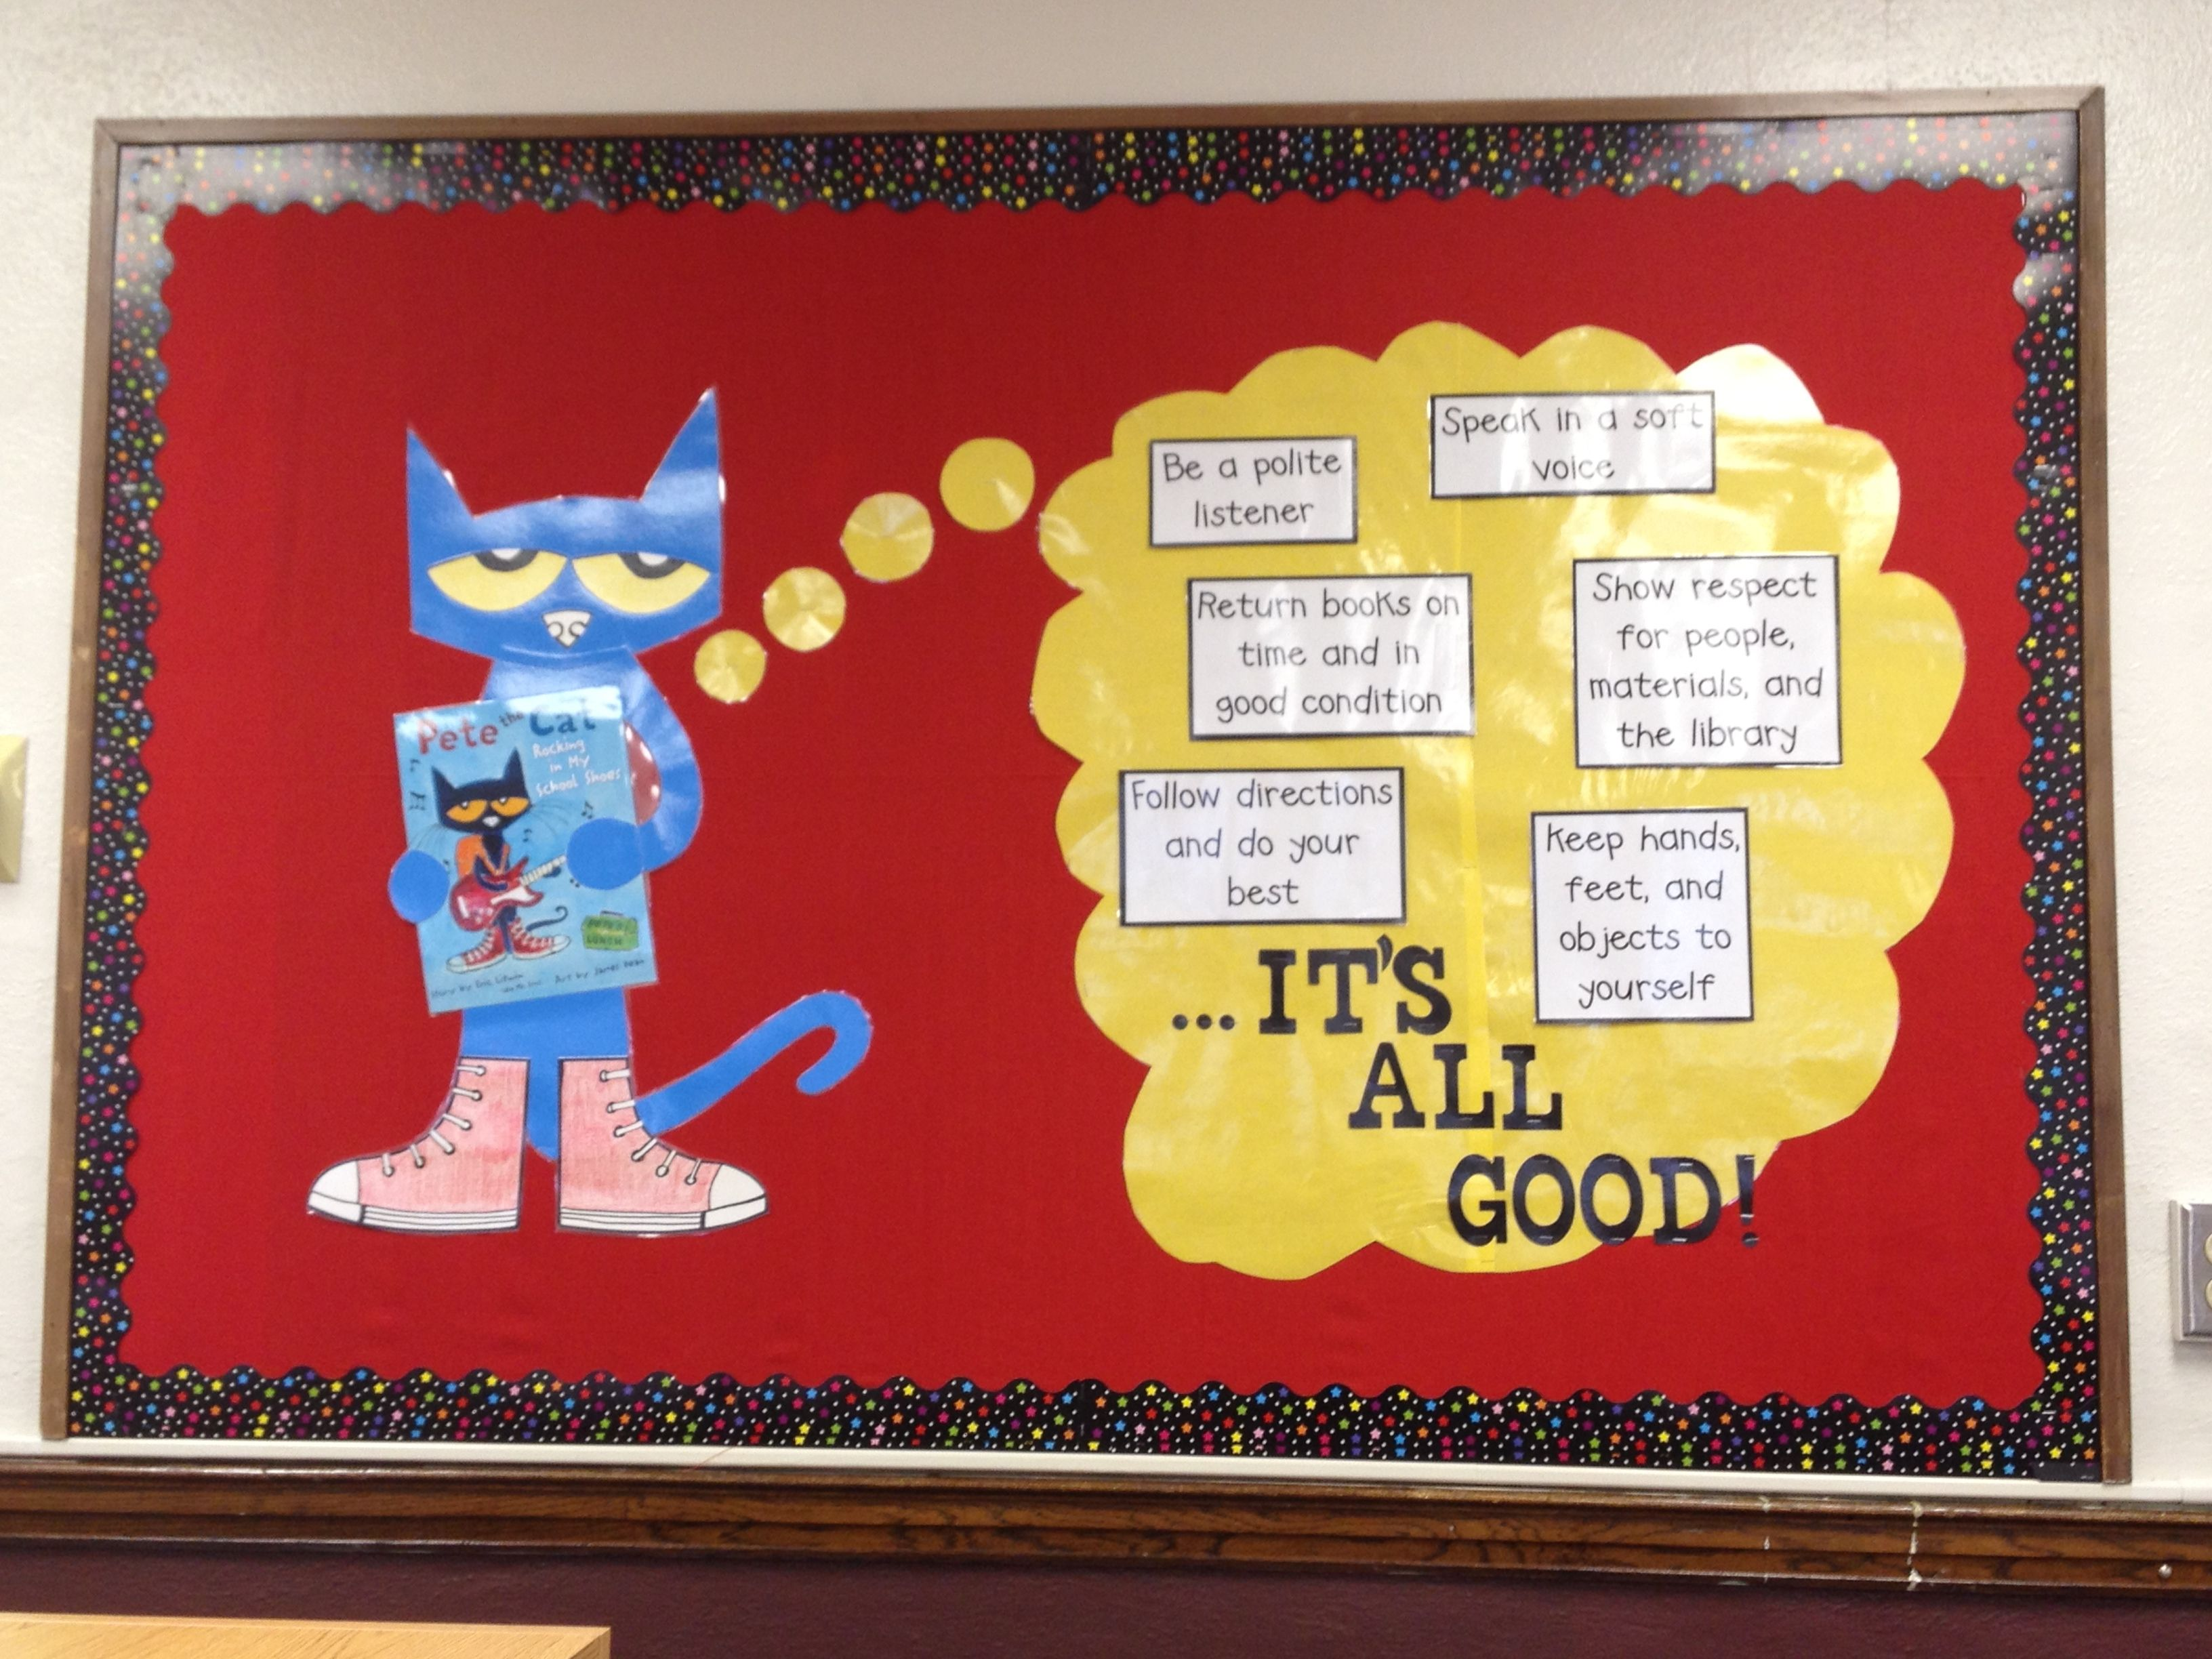 Pete The Cat Library Media Center Rules Bulletin Board